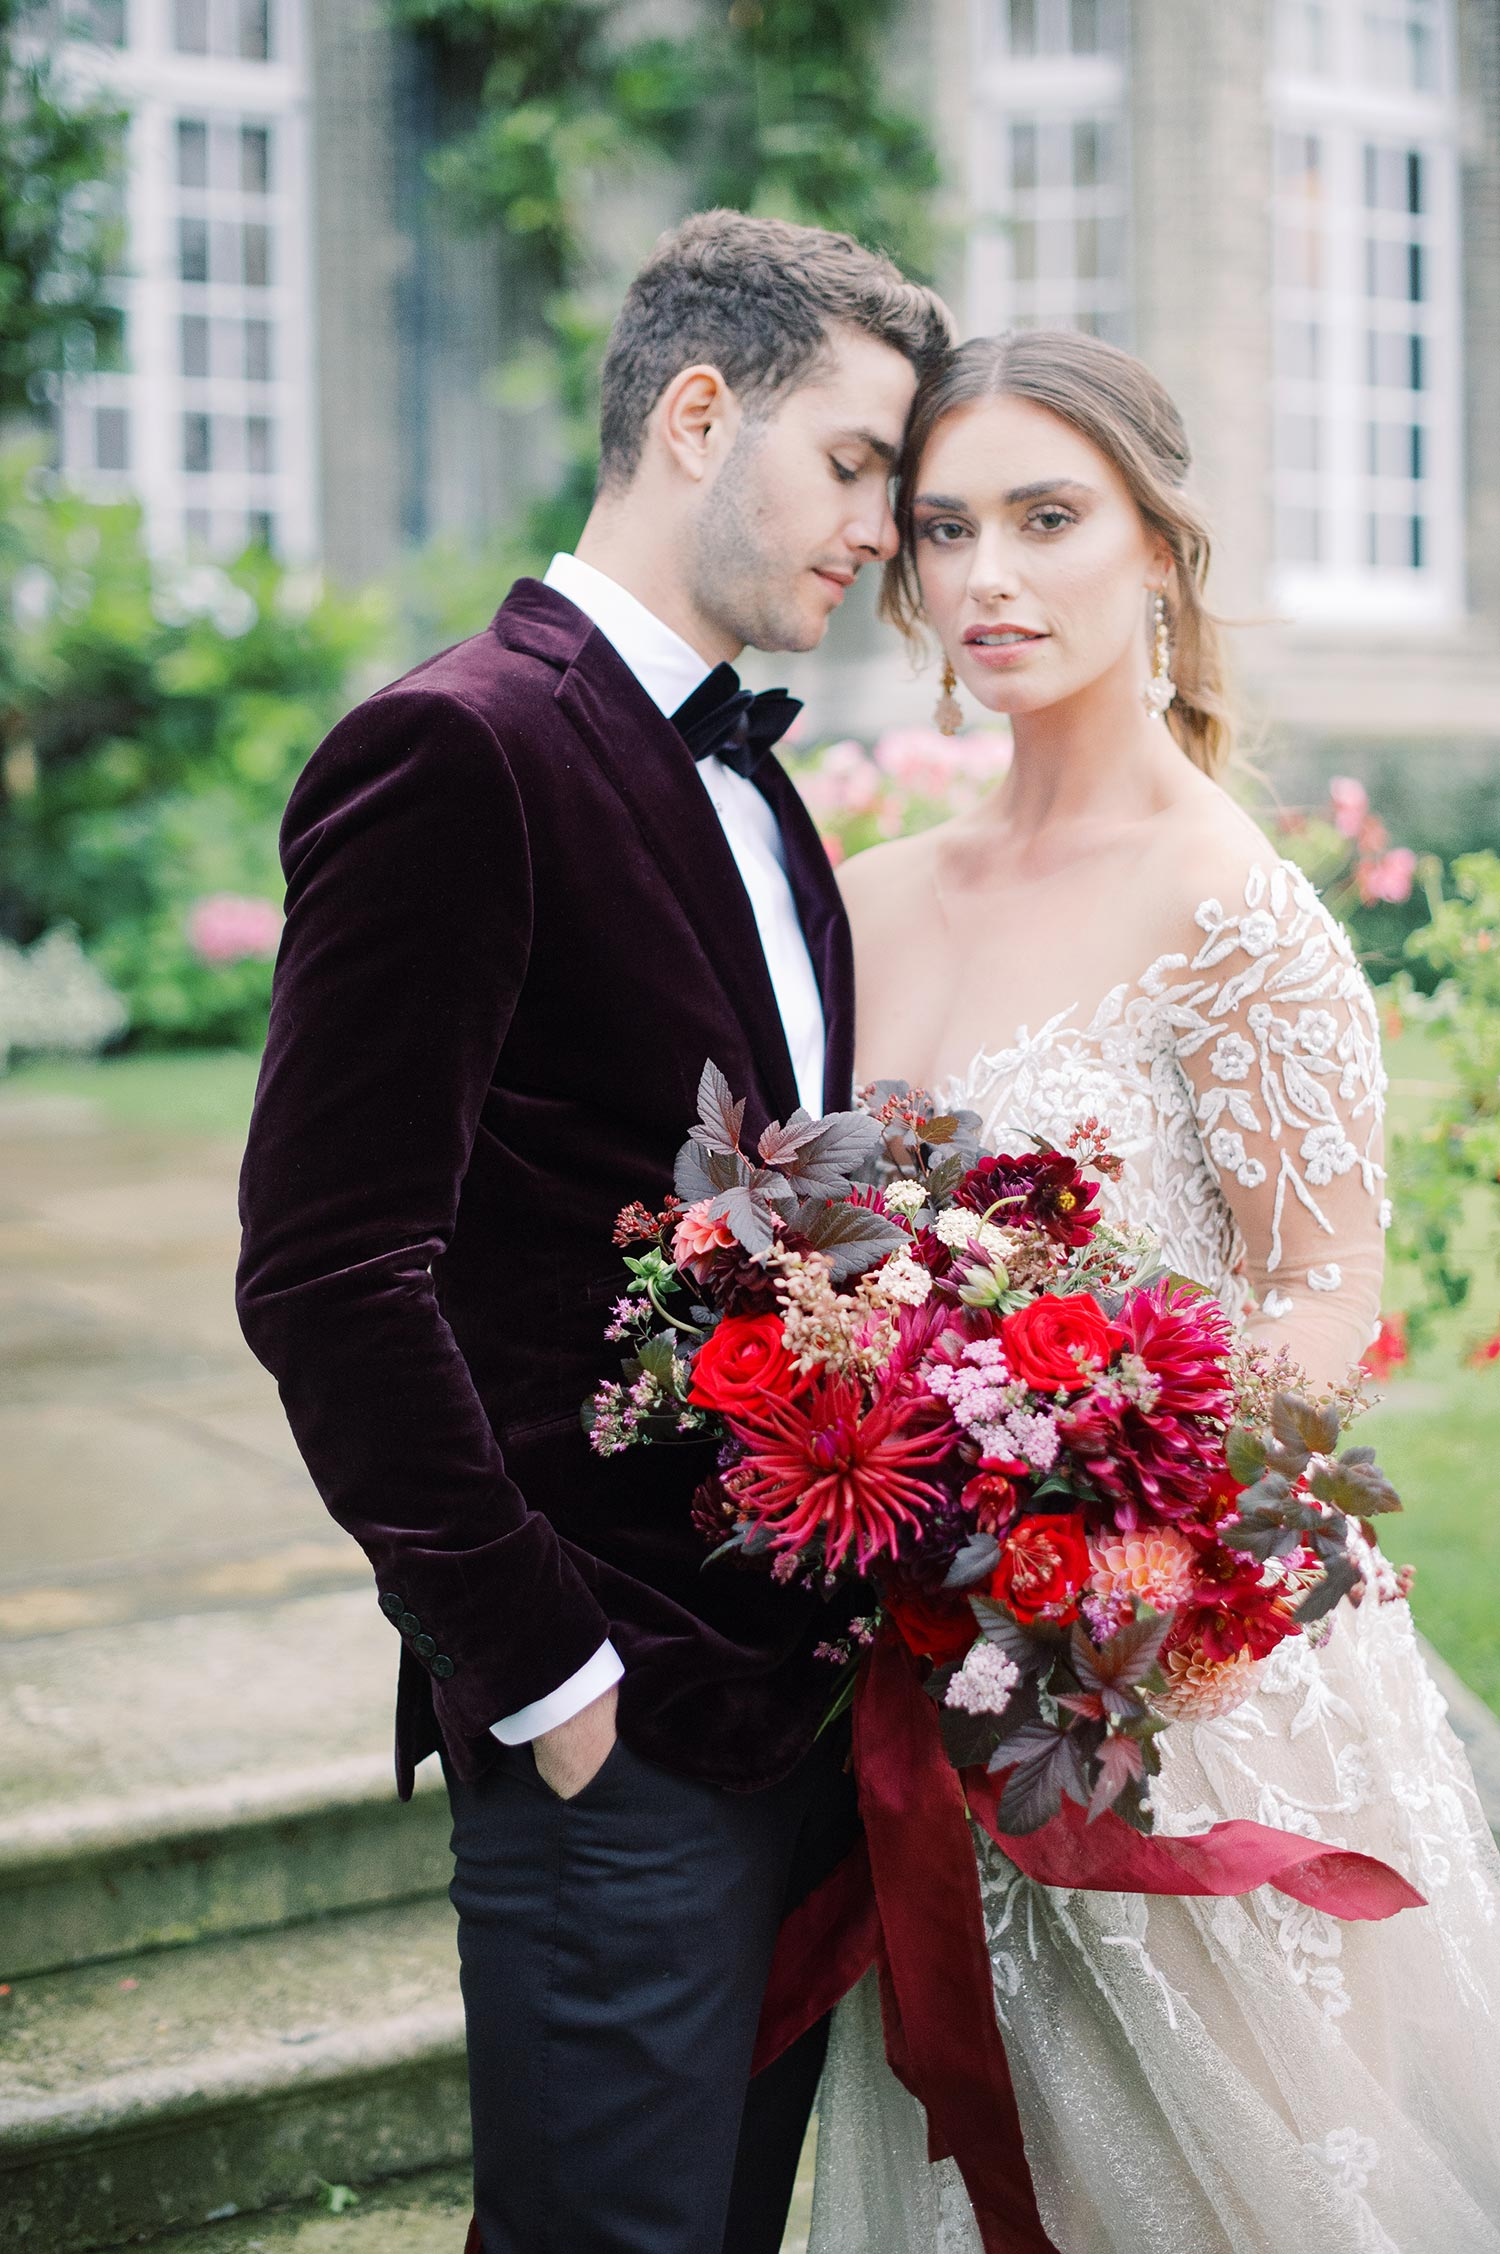 Dazzling Gowns and Exquisite Details Give Inspiration for a Christmas Wedding